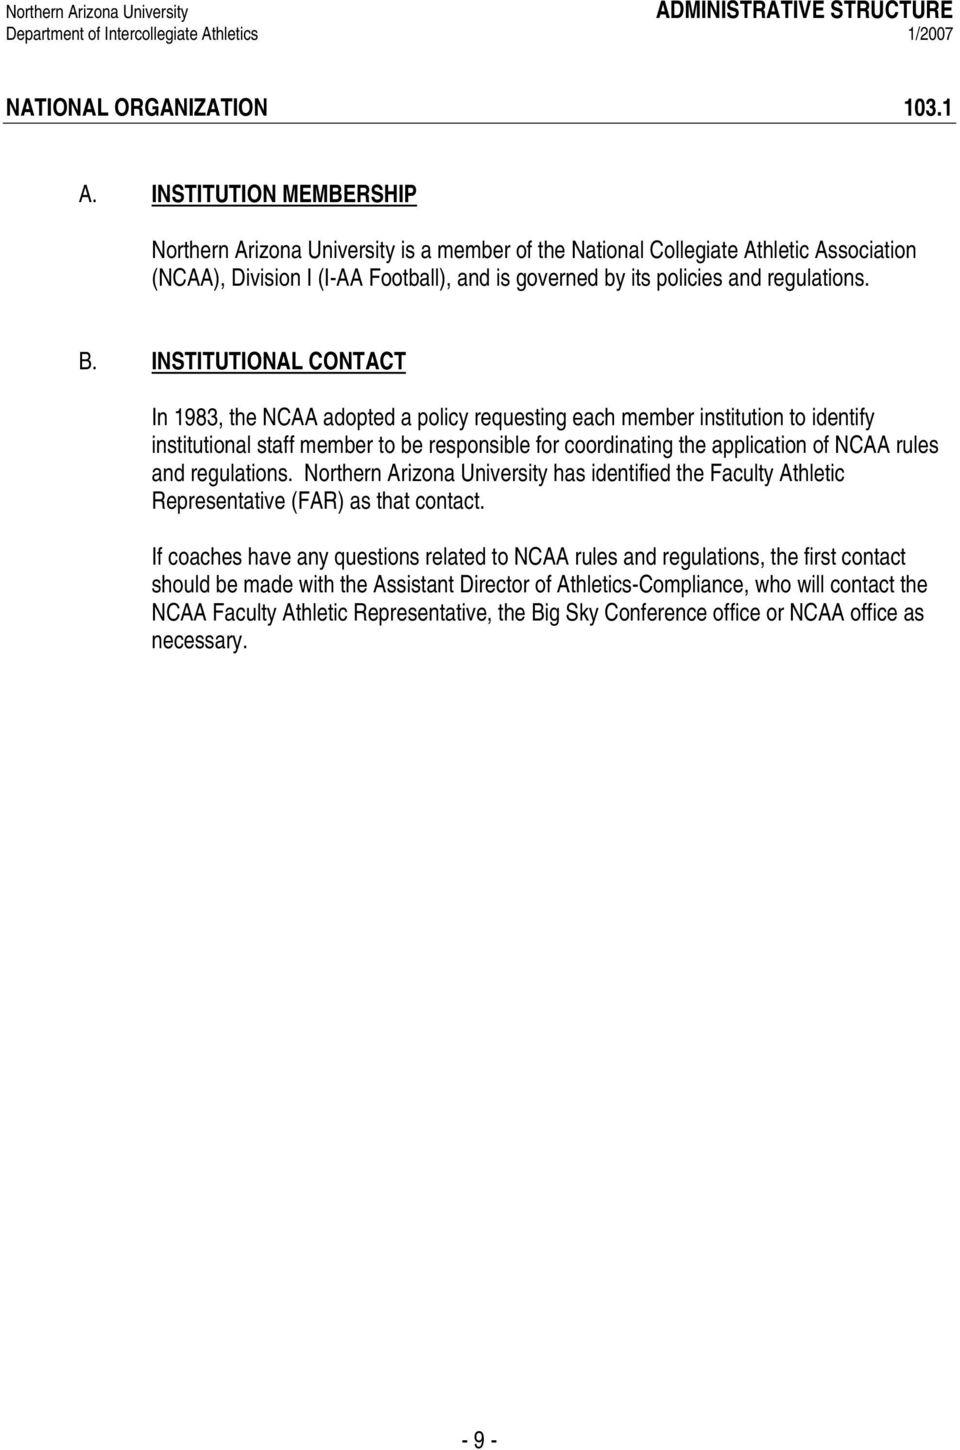 INSTITUTIONAL CONTACT In 1983, the NCAA adopted a policy requesting each member institution to identify institutional staff member to be responsible for coordinating the application of NCAA